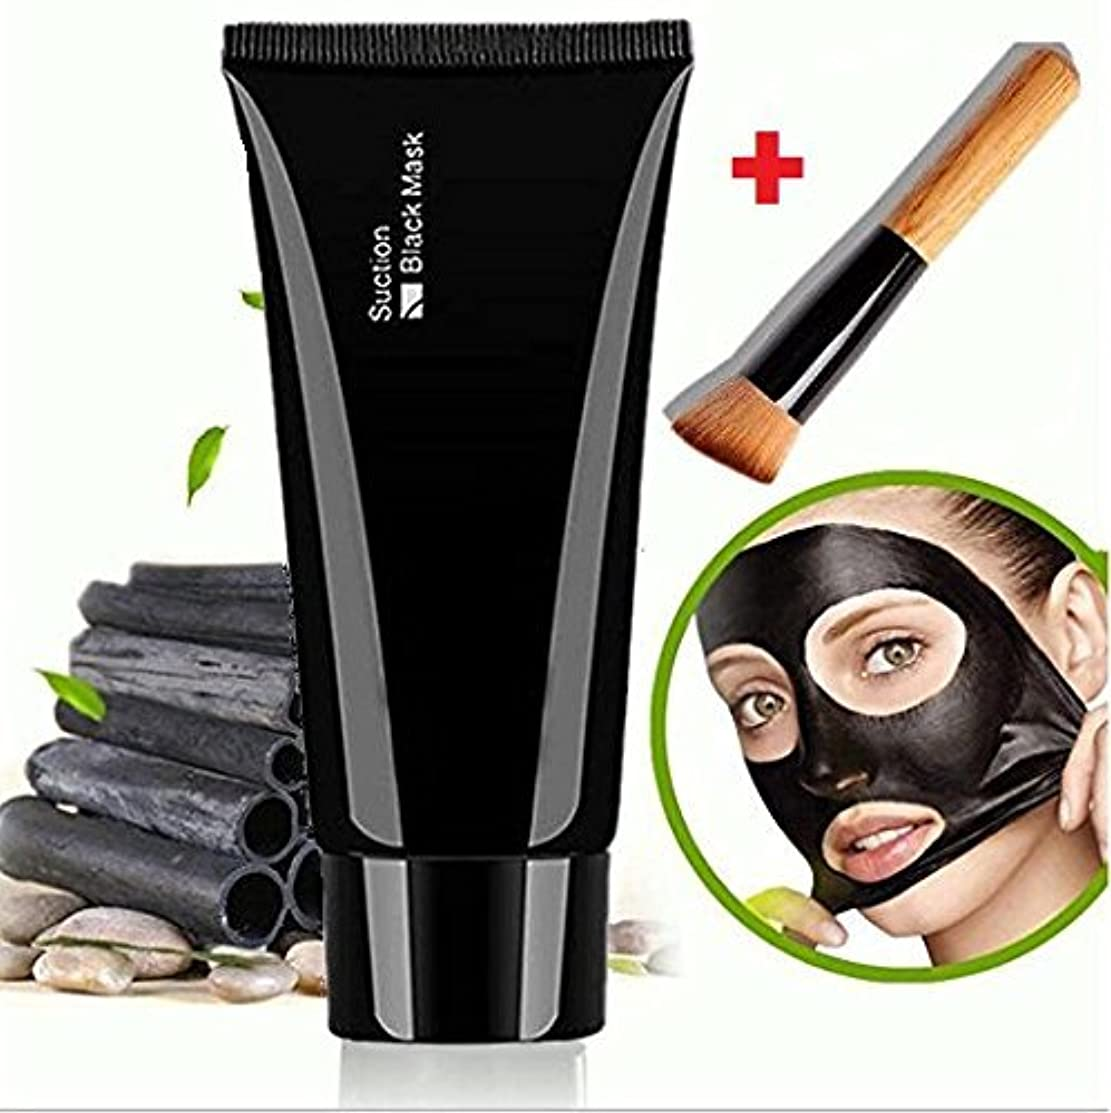 Facial Mask Black, Face Apeel Cleansing Mask Deep Cleanser Blackhead Acne Remover Peel off Mask + Wooden Brush